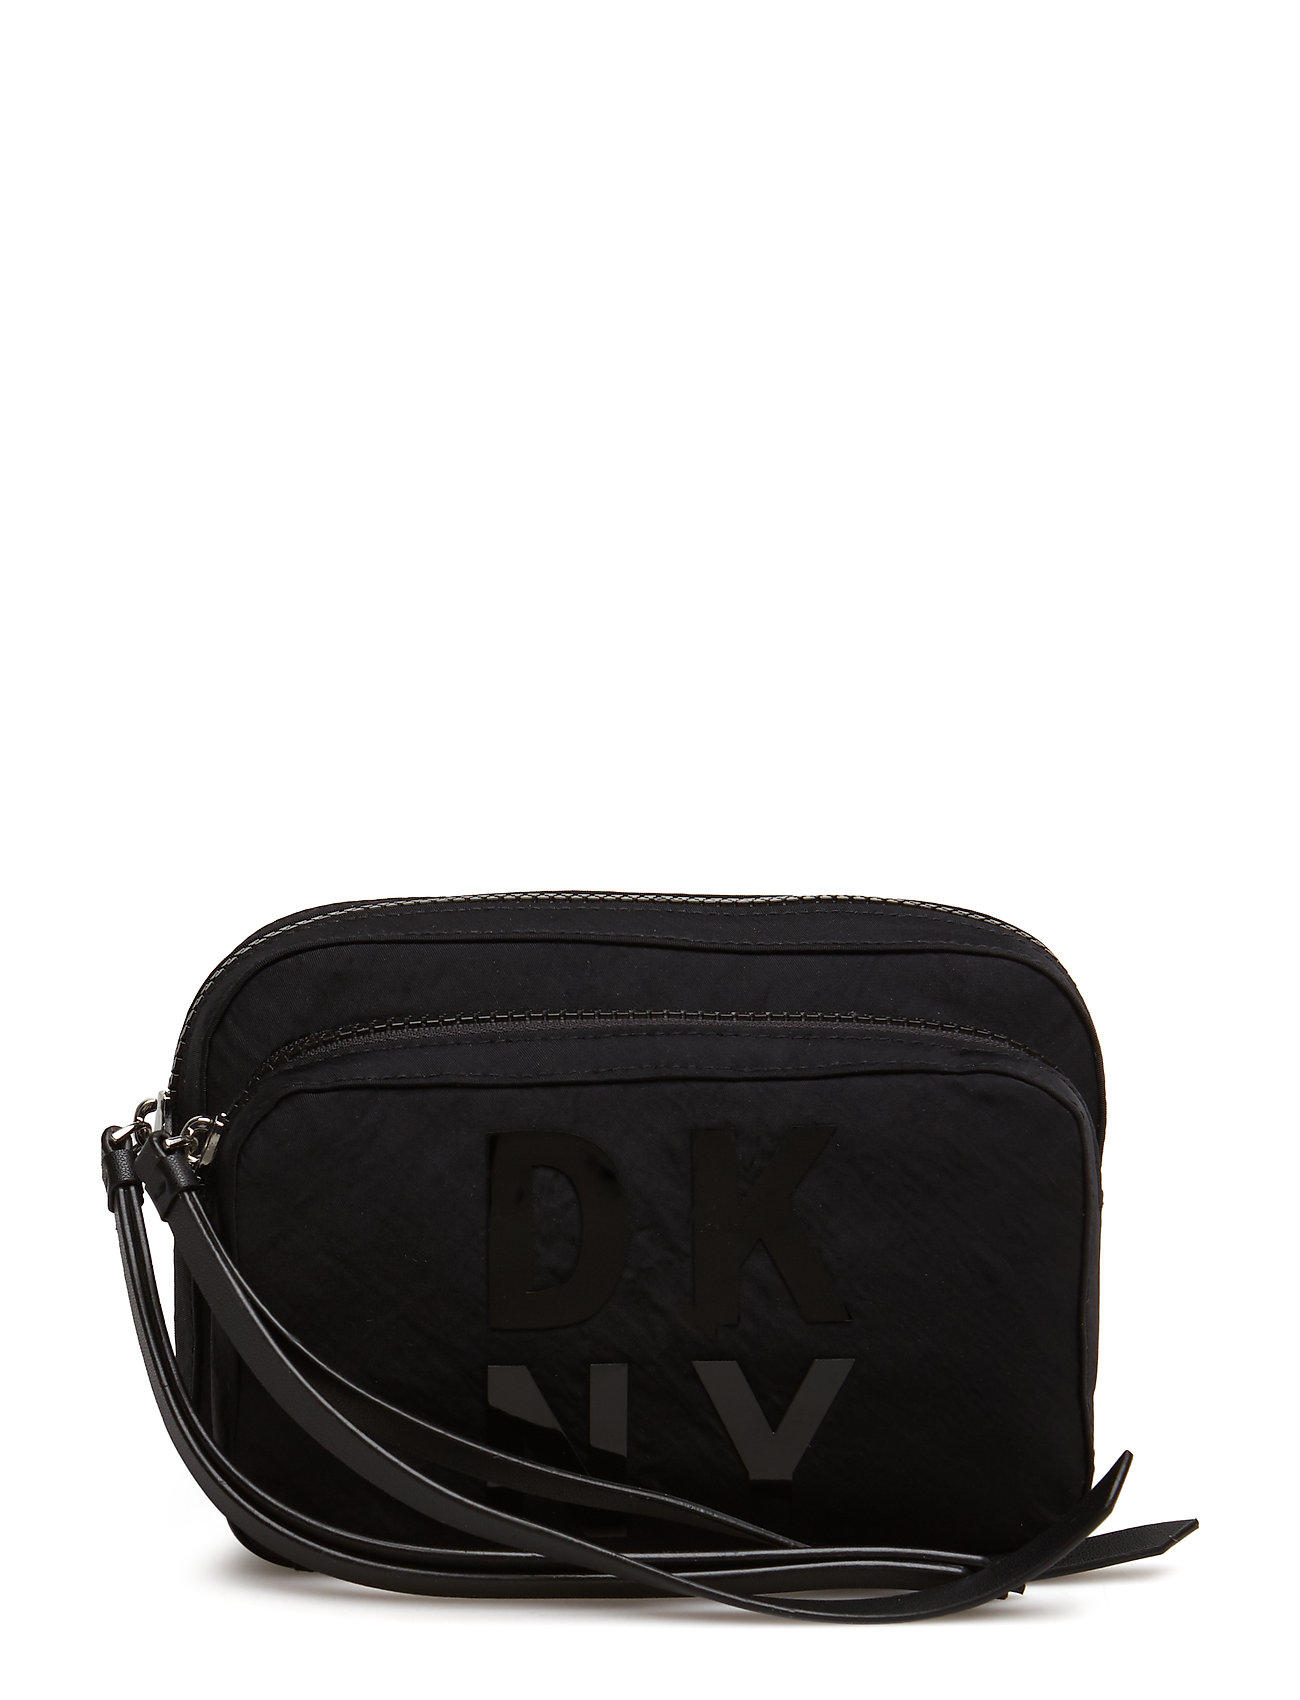 Ave A-belt Bag-nylon (Black silver) (£40.70) - DKNY Bags - Bags ... 920e990d6f